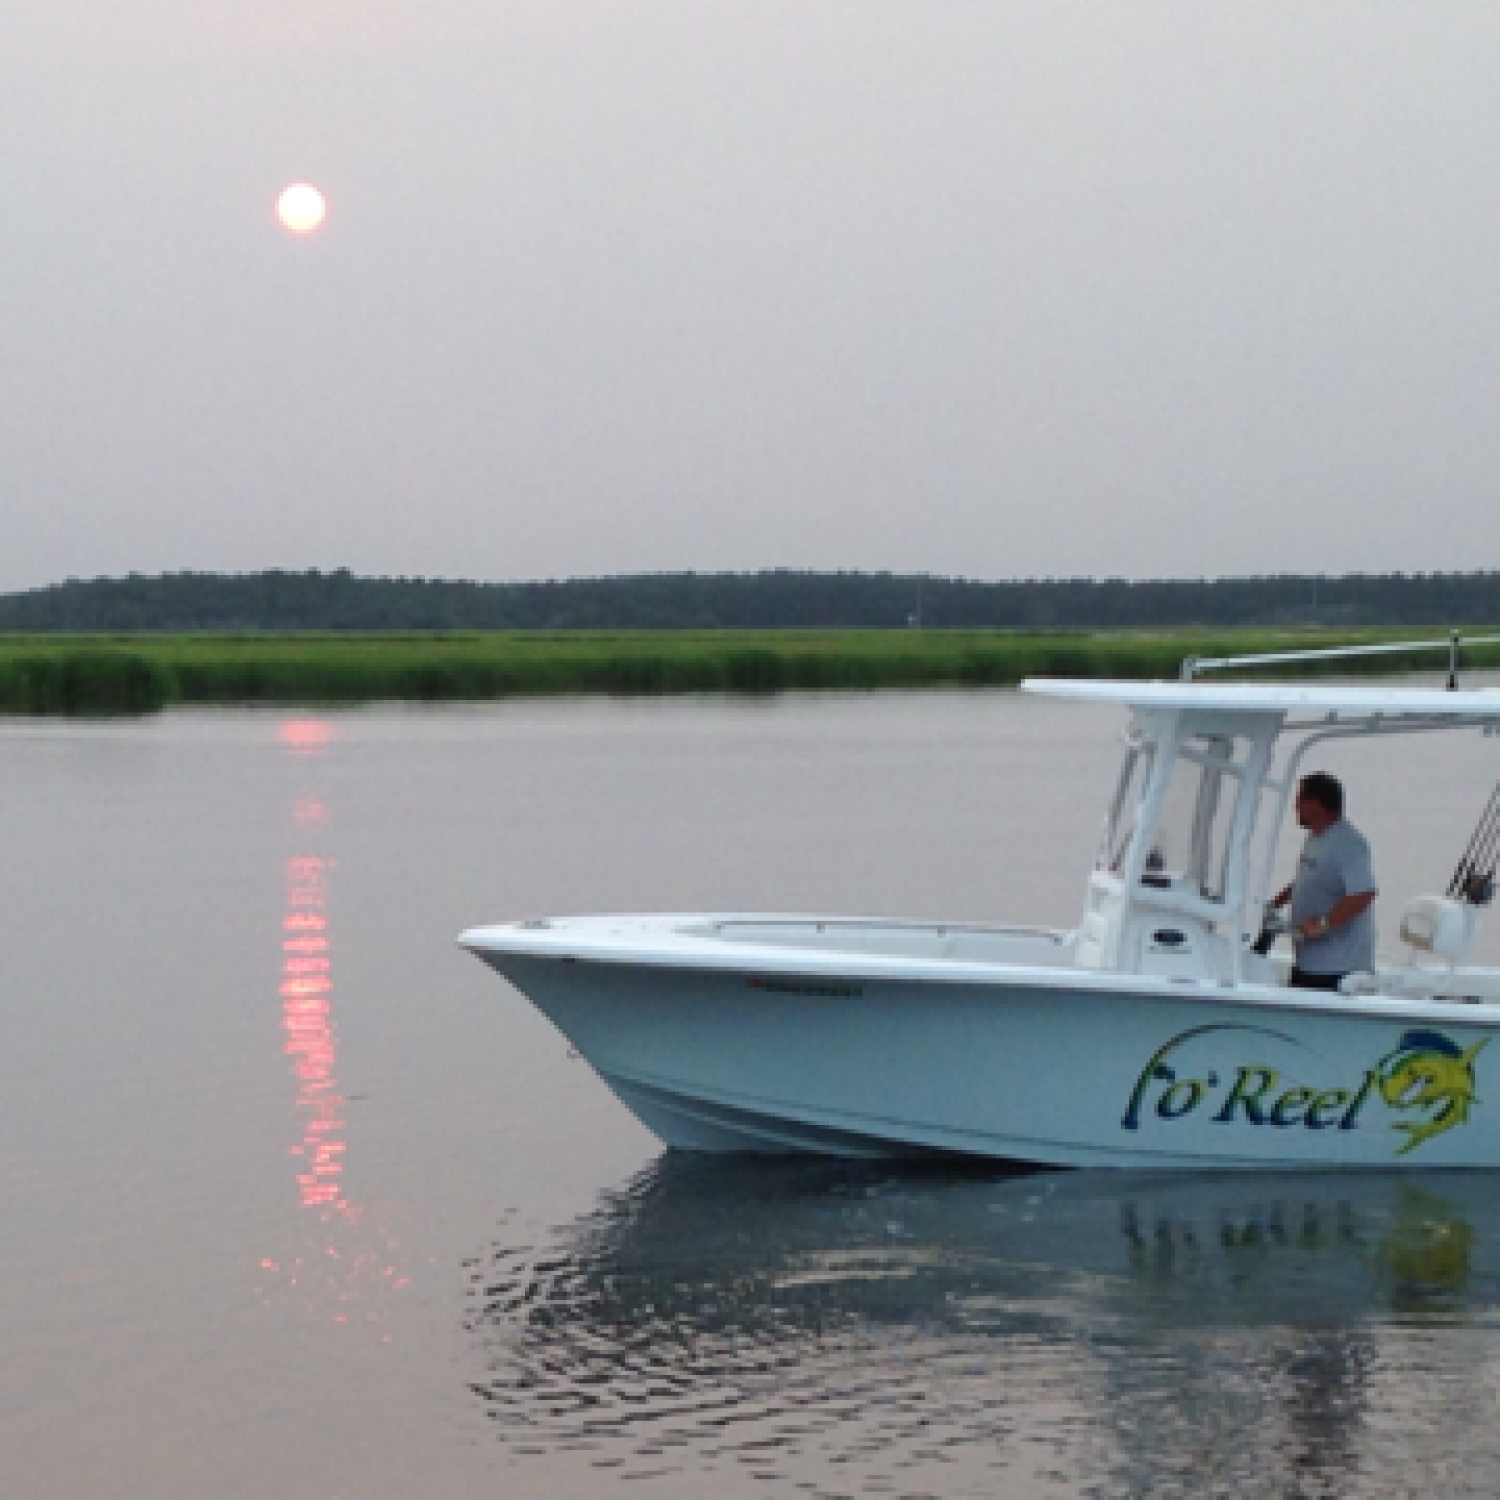 Title: Fo Reel - On board their Sportsman Heritage 231 Center Console - Location: Richmond Hill, Georgia. Participating in the Photo Contest #SportsmanDecember2015